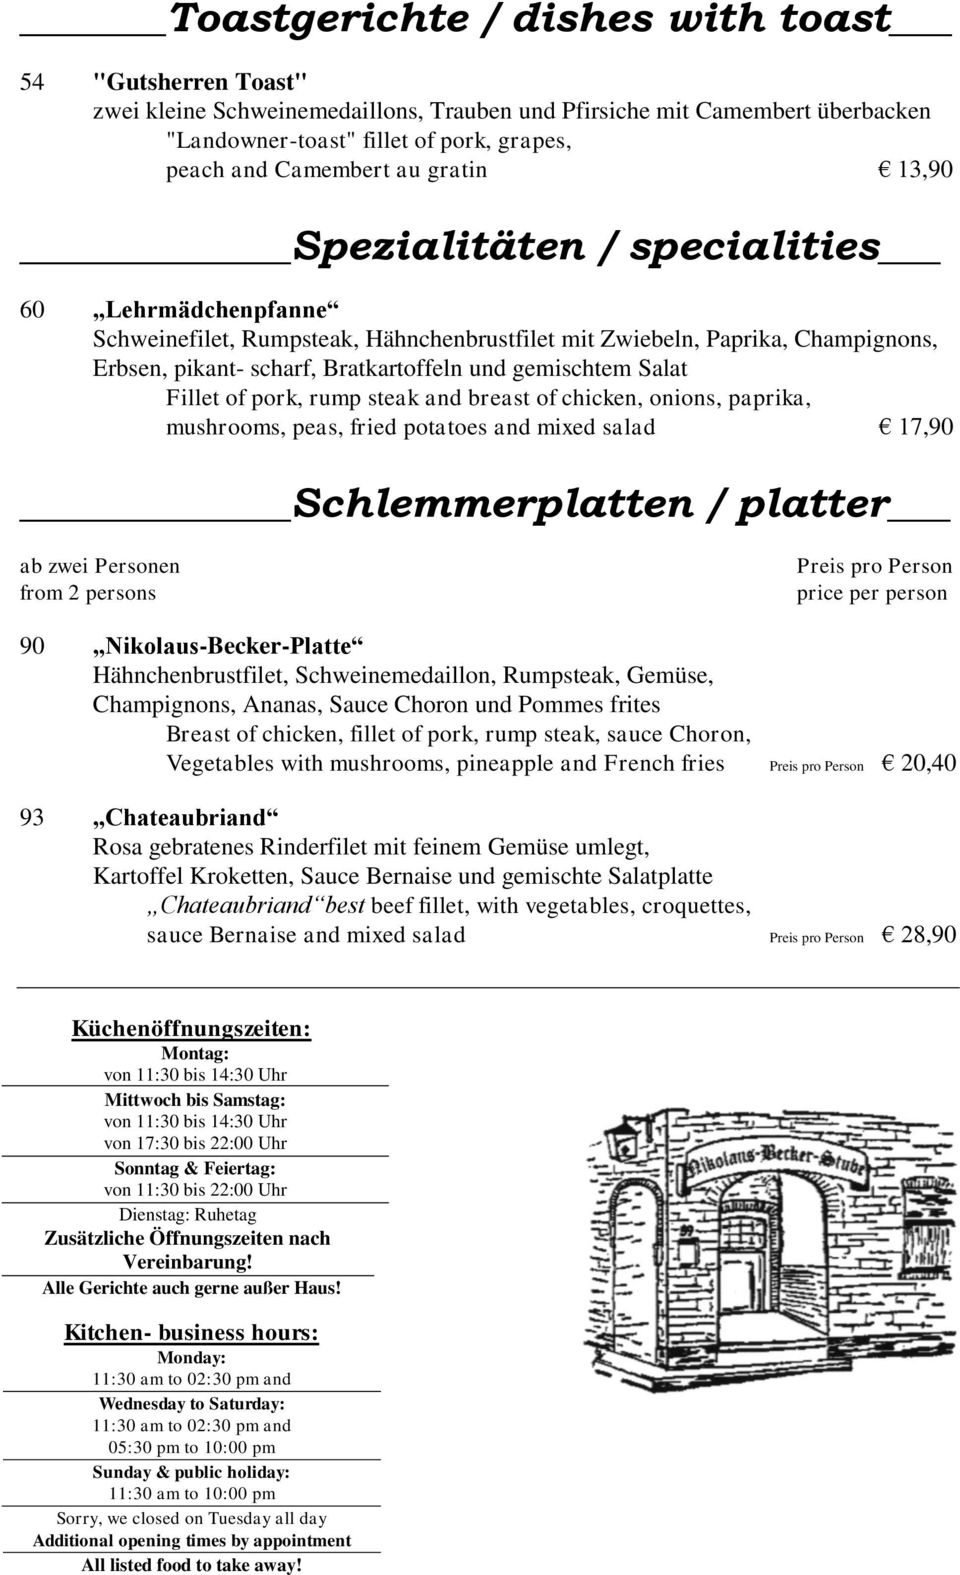 Salat Fillet of pork, rump steak and breast of chicken, onions, paprika, mushrooms, peas, fried potatoes and mixed salad 17,90 Schlemmerplatten / platter ab zwei Personen from 2 persons Preis pro